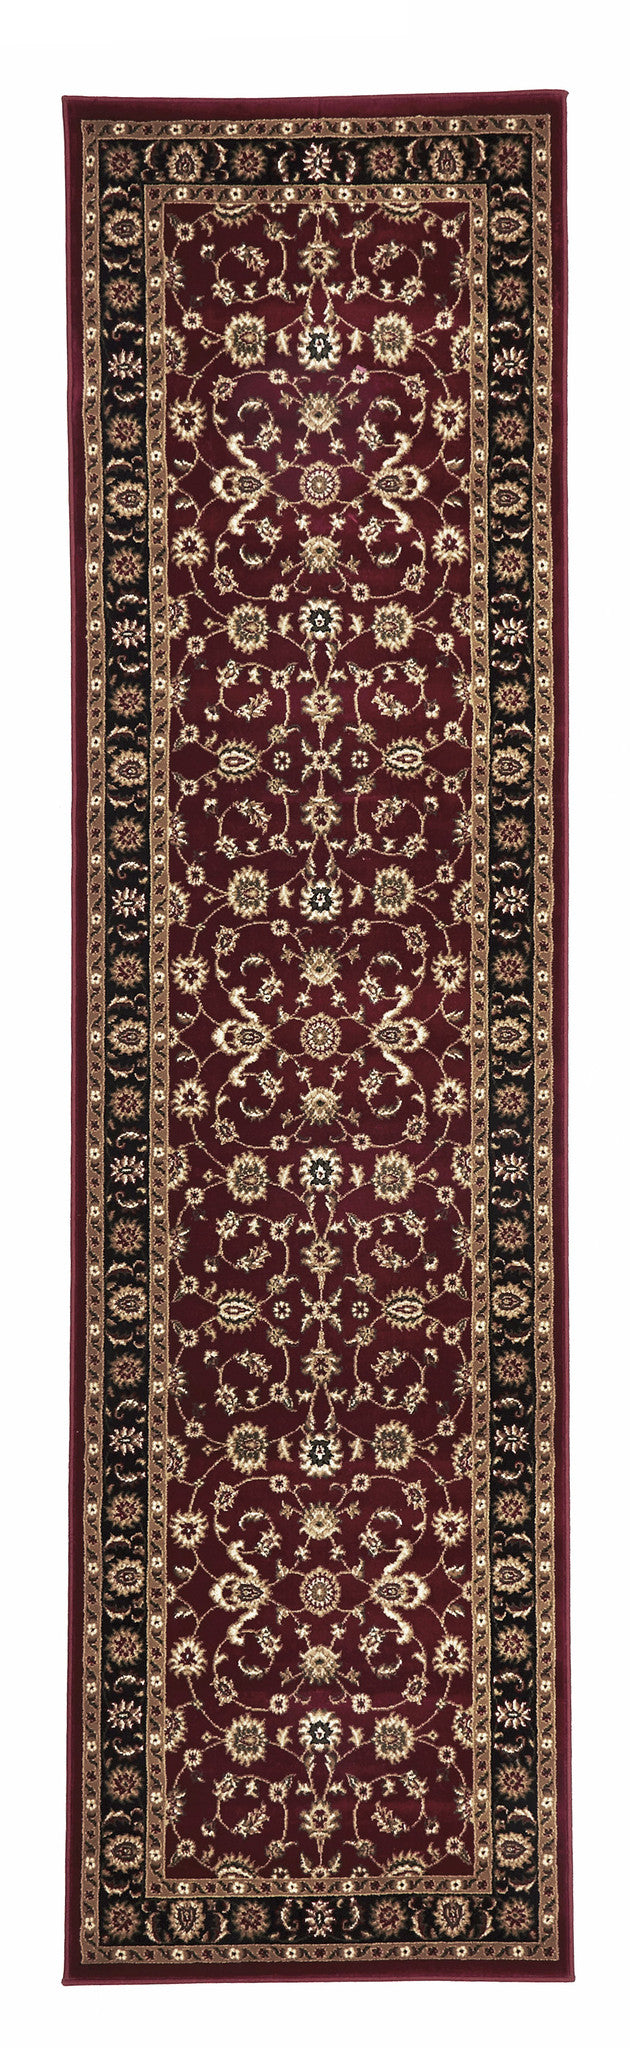 Sydney 1 Rug - Red with Black Border